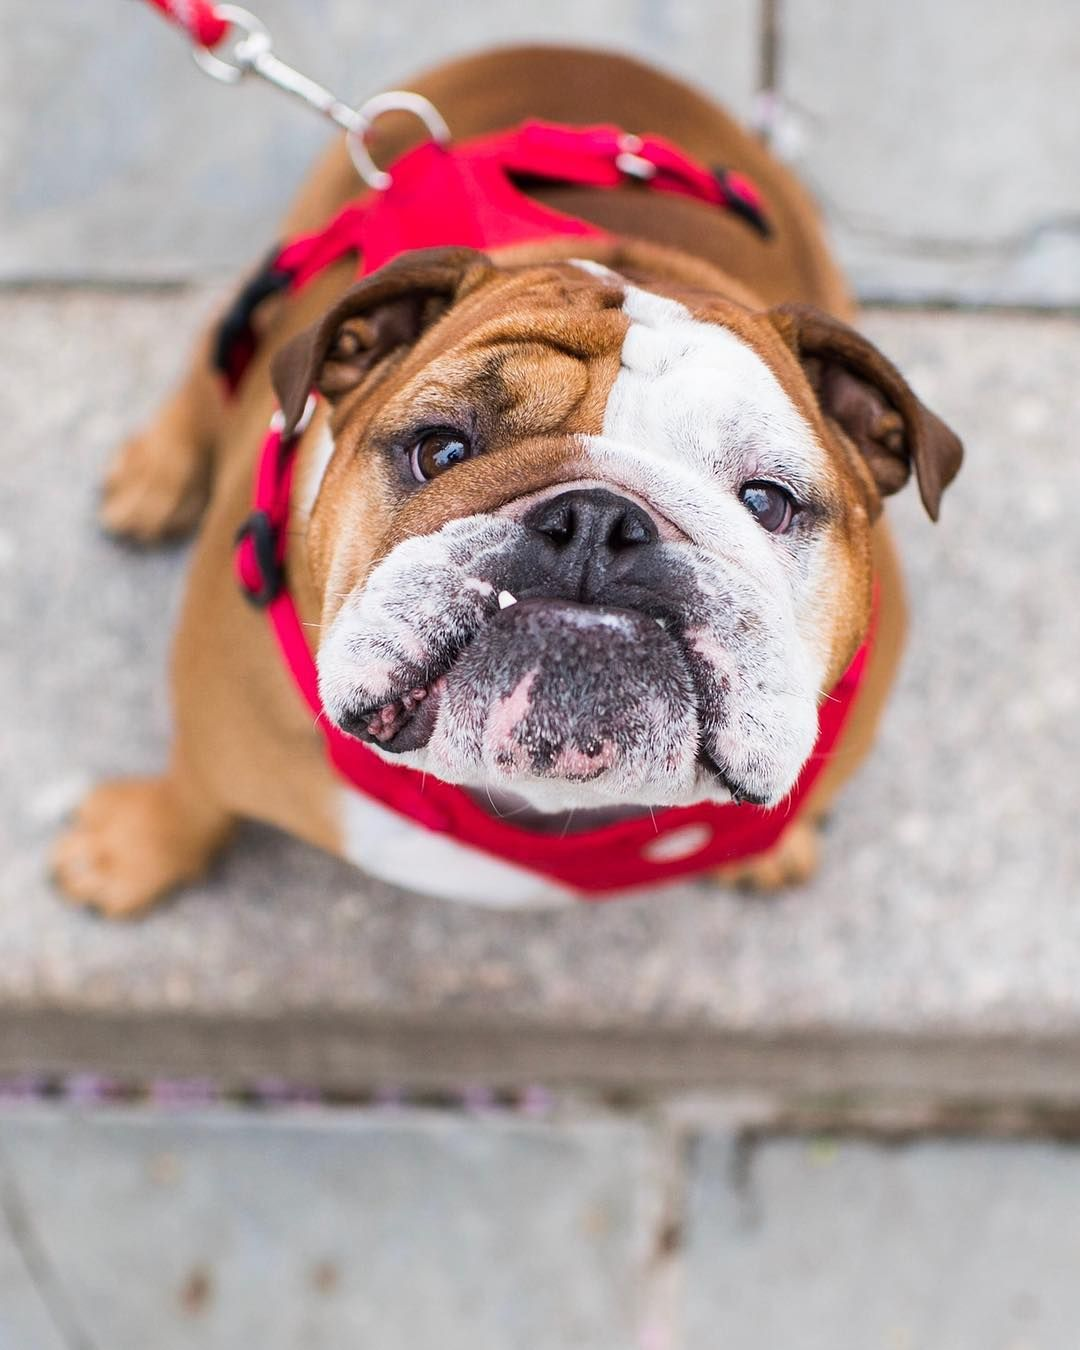 The Dogist On Instagram Elvis English Bulldog 4 Y O Carl Schurz Park New York Ny He Runs The Household Chien Francais Chien Loup Chien